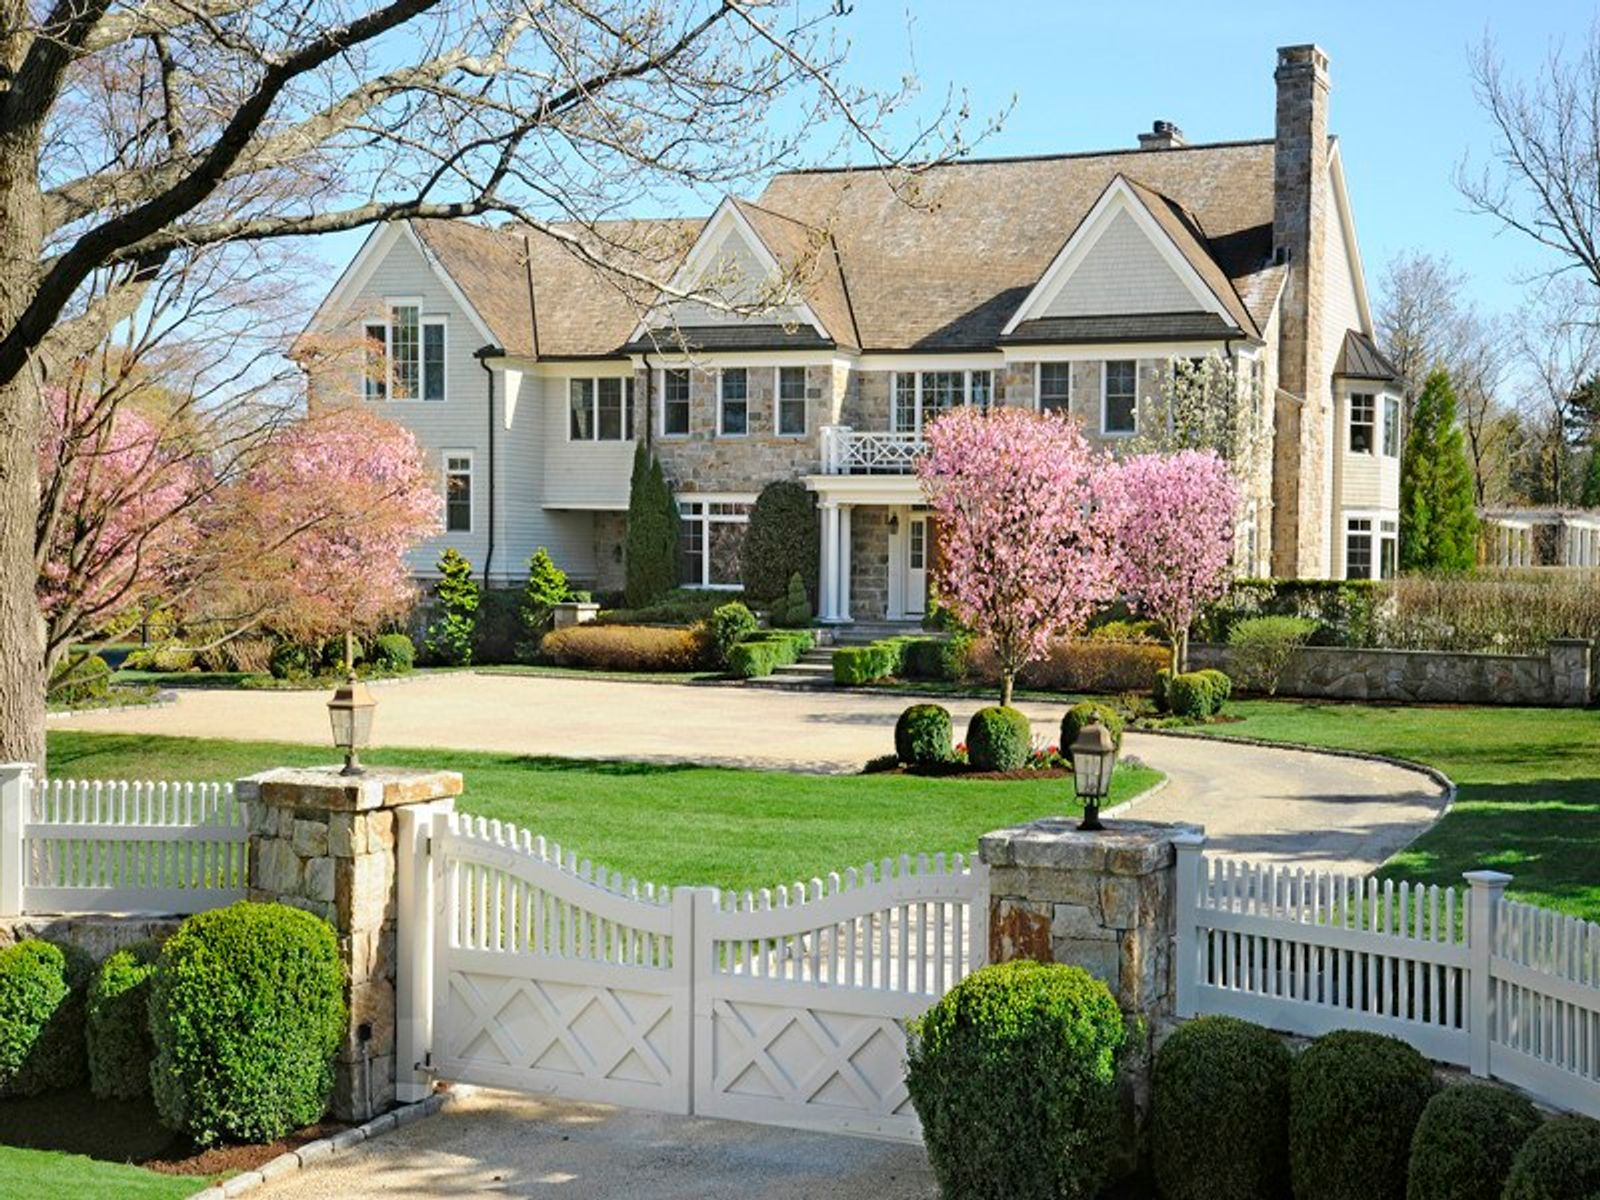 The Perfect House, Greenwich CT Single Family Home - Greenwich Real Estate